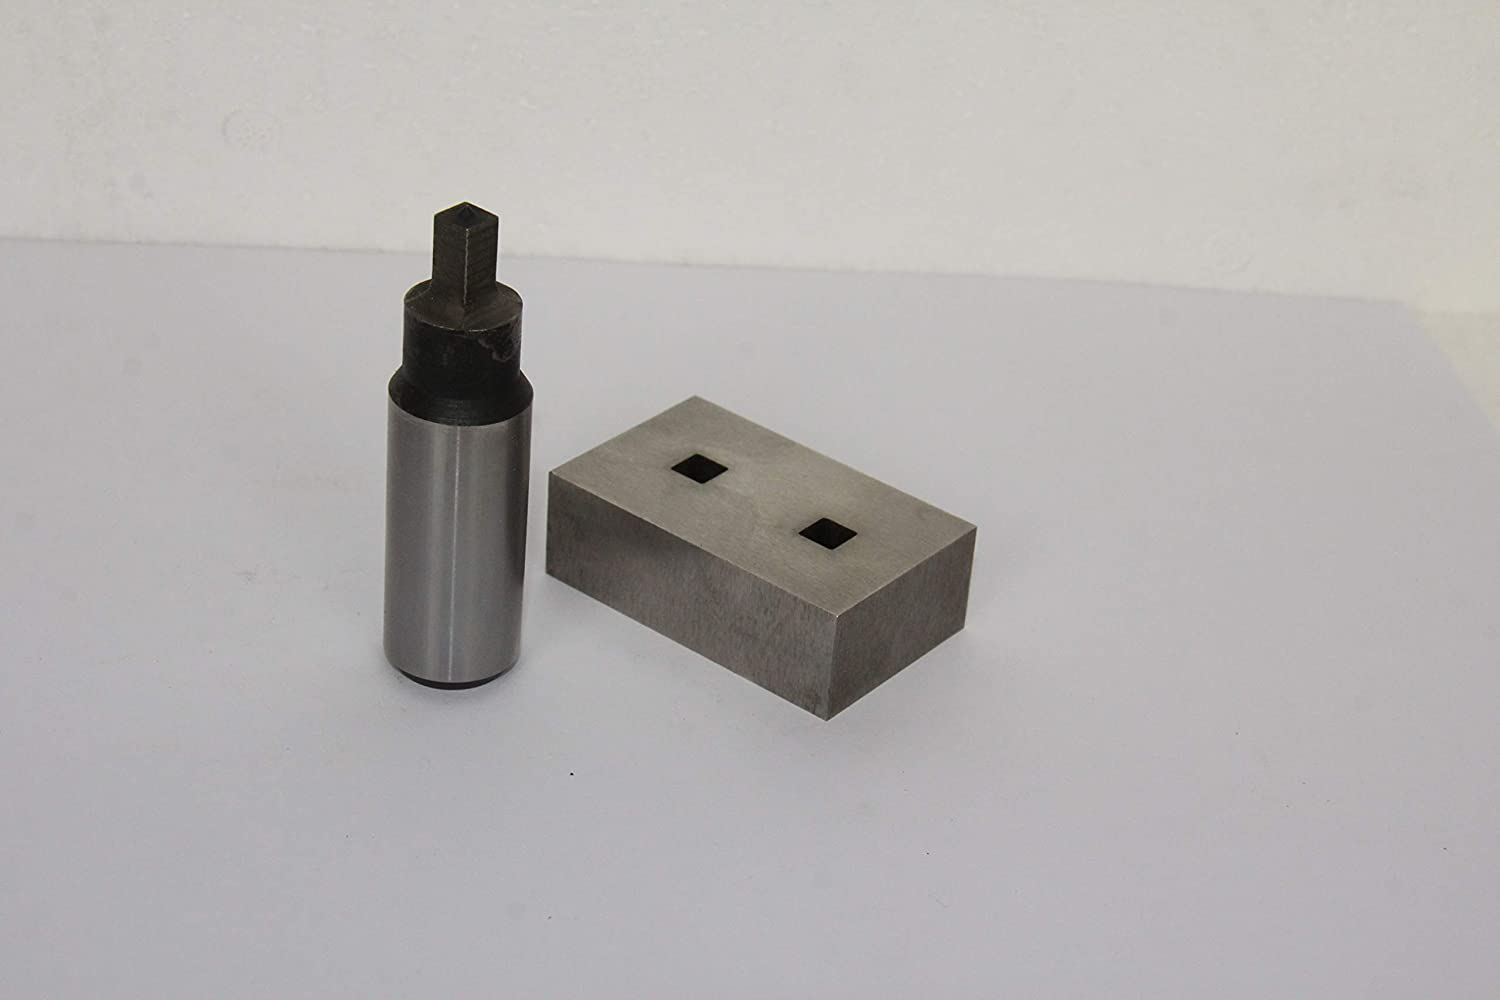 1//2 Square Hole Punch Dies Square Hole Punch Dies Tooling for Manual Ironworker PBS-9